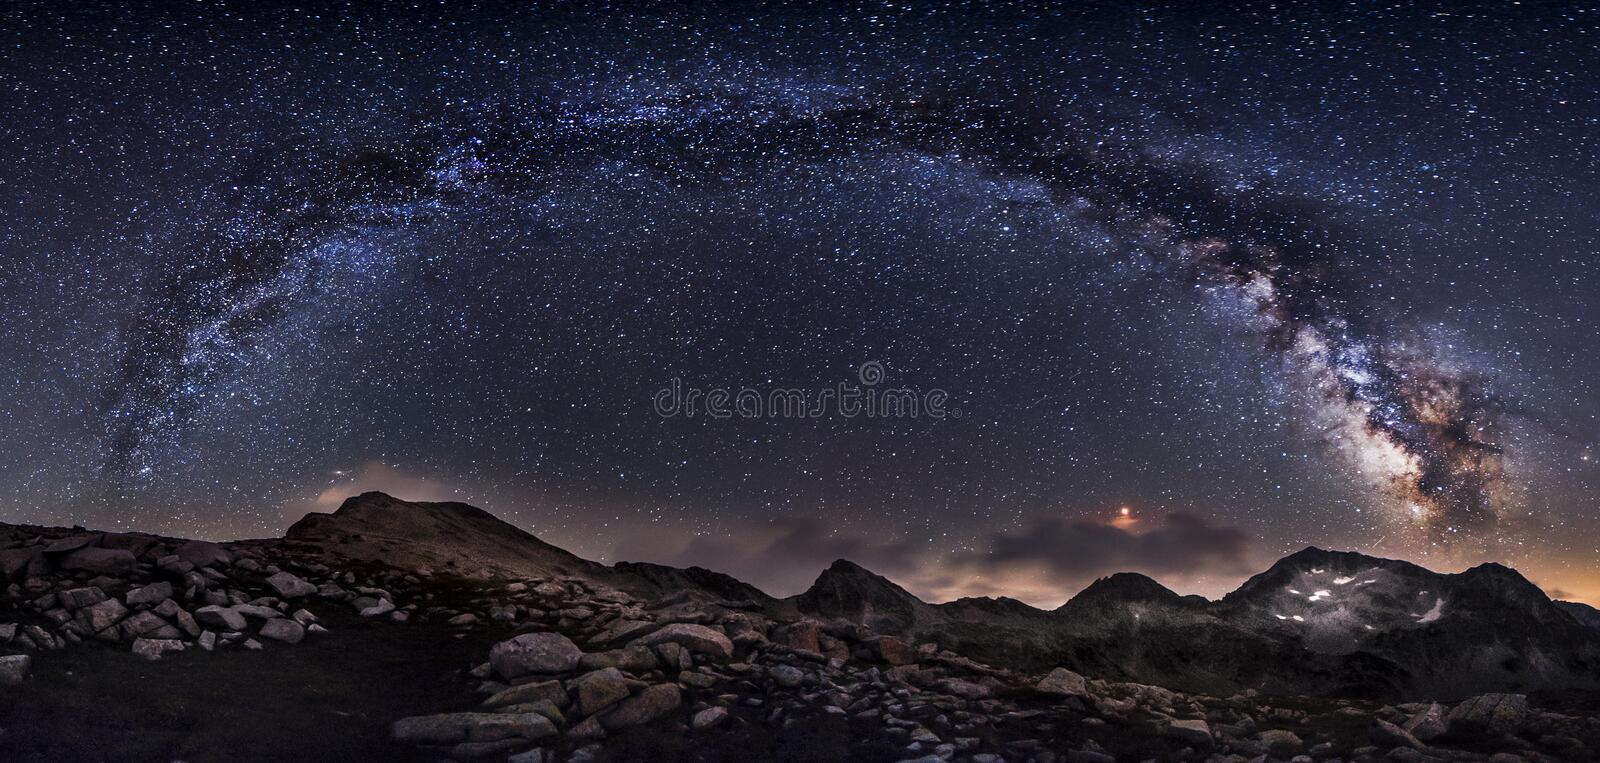 Milky Way galaxy and mountain peaks panorama. Amazing scene of Pirin mountains and starry sky at night in Bulgaria. Rocks with peaks and sky with stars. Night royalty free stock photography